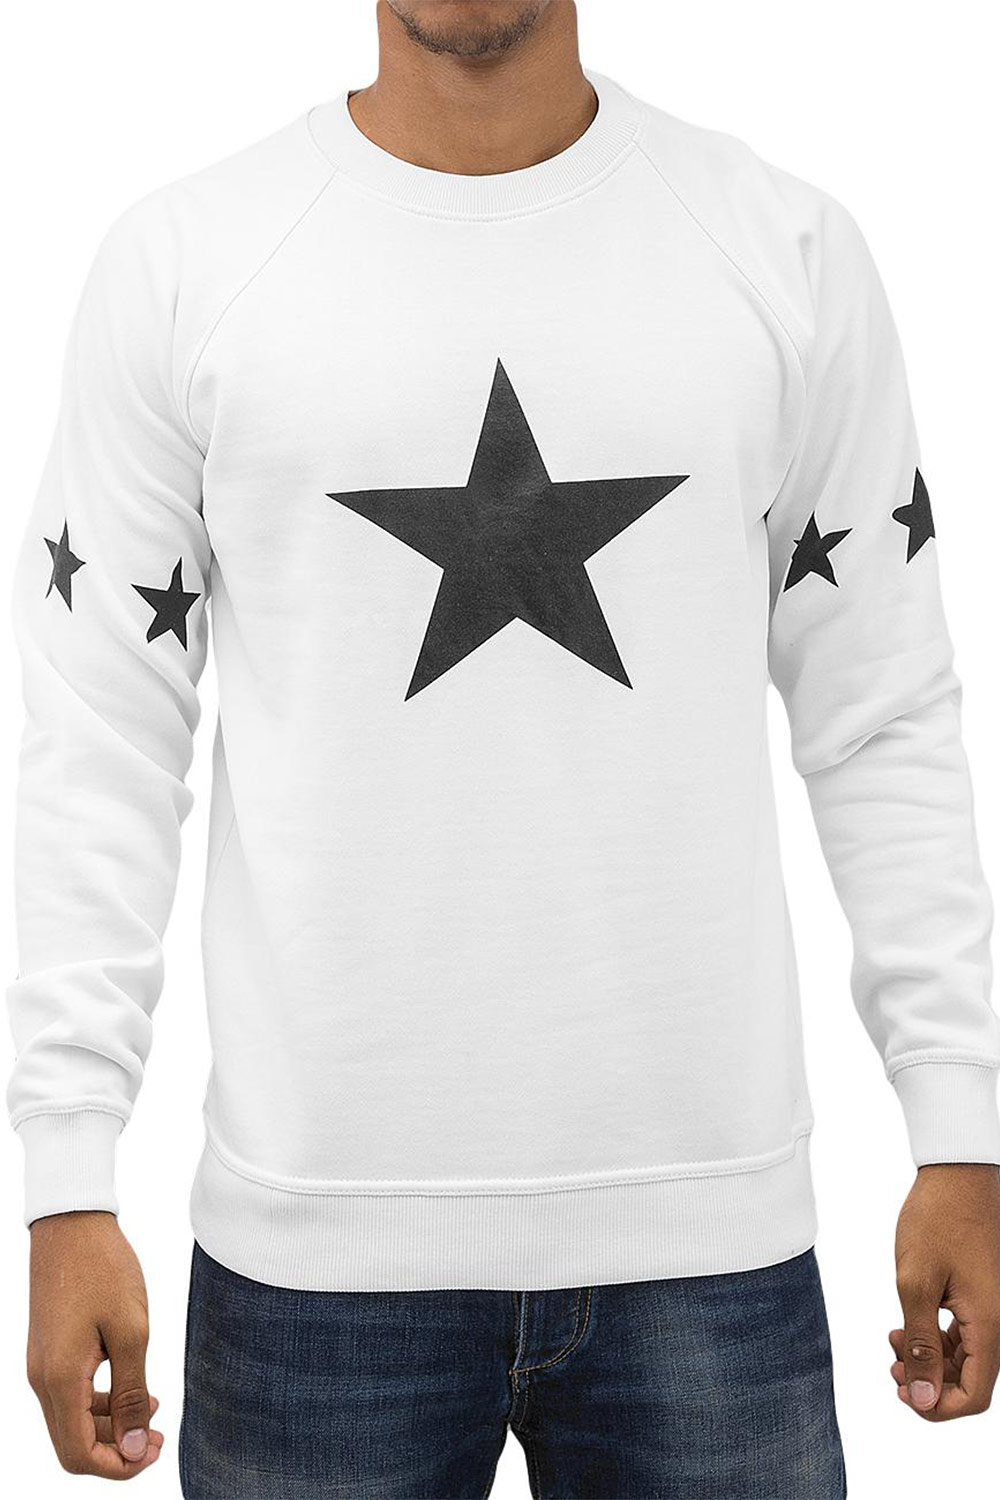 JUST RHYSE Star Sweatshirt White auf oboy.de